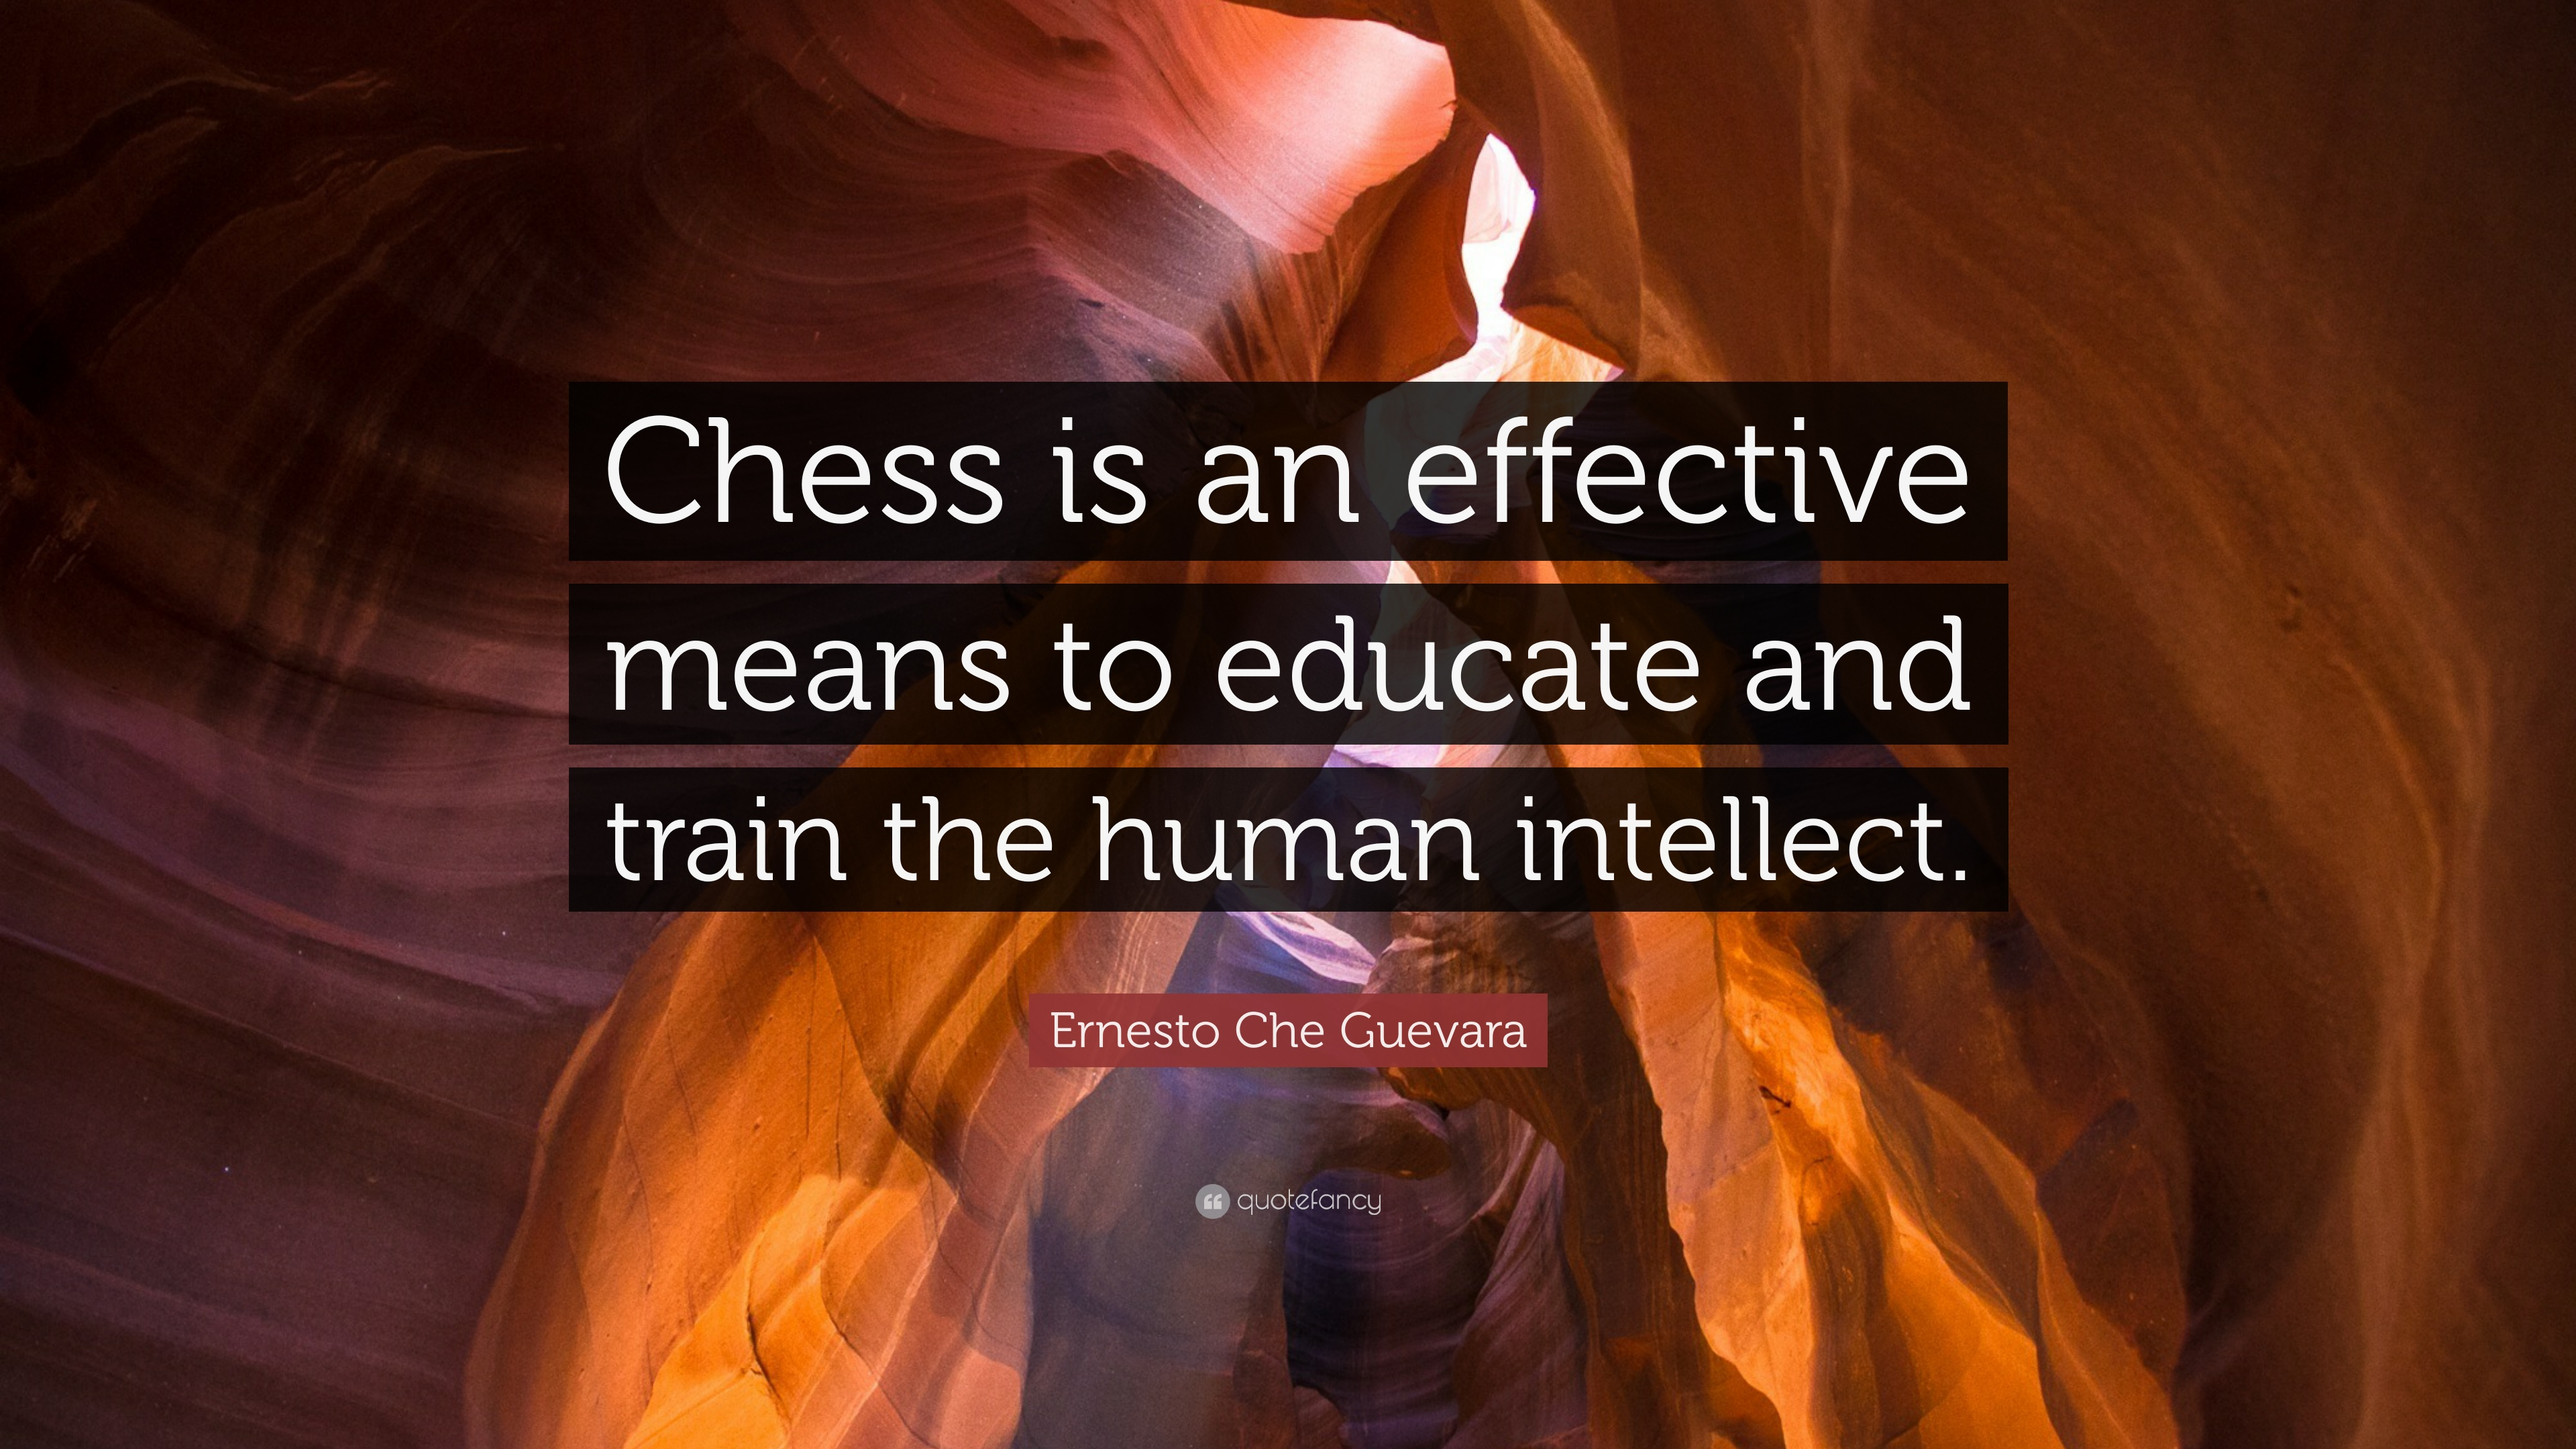 Ernesto Che Guevara Quote Chess Is An Effective Means To Educate